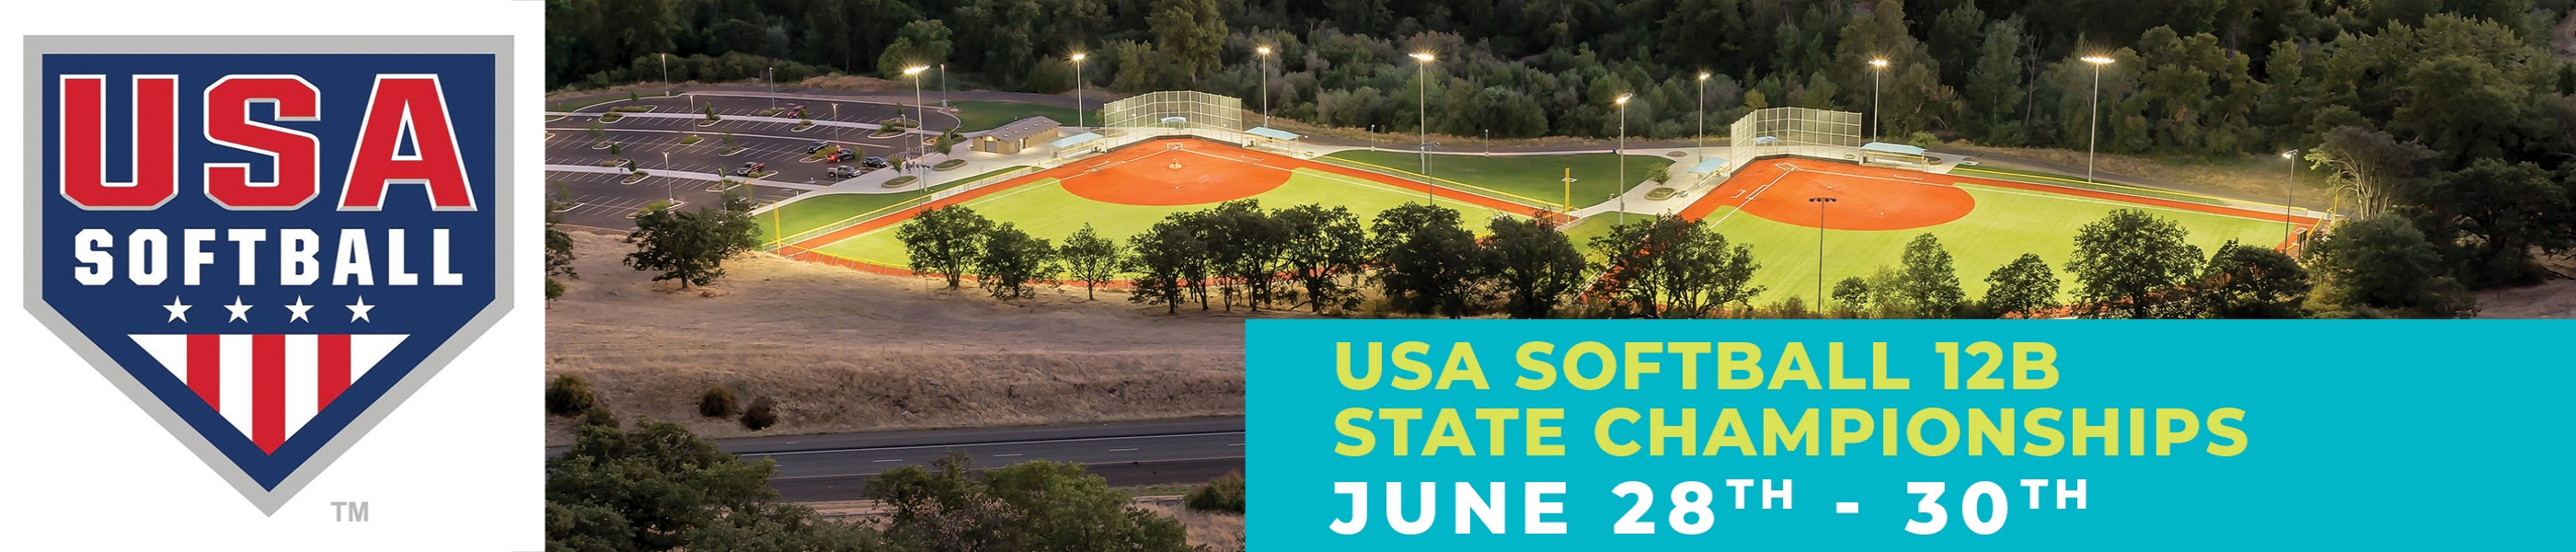 USA Softball 12B Championships in Medford Oregon